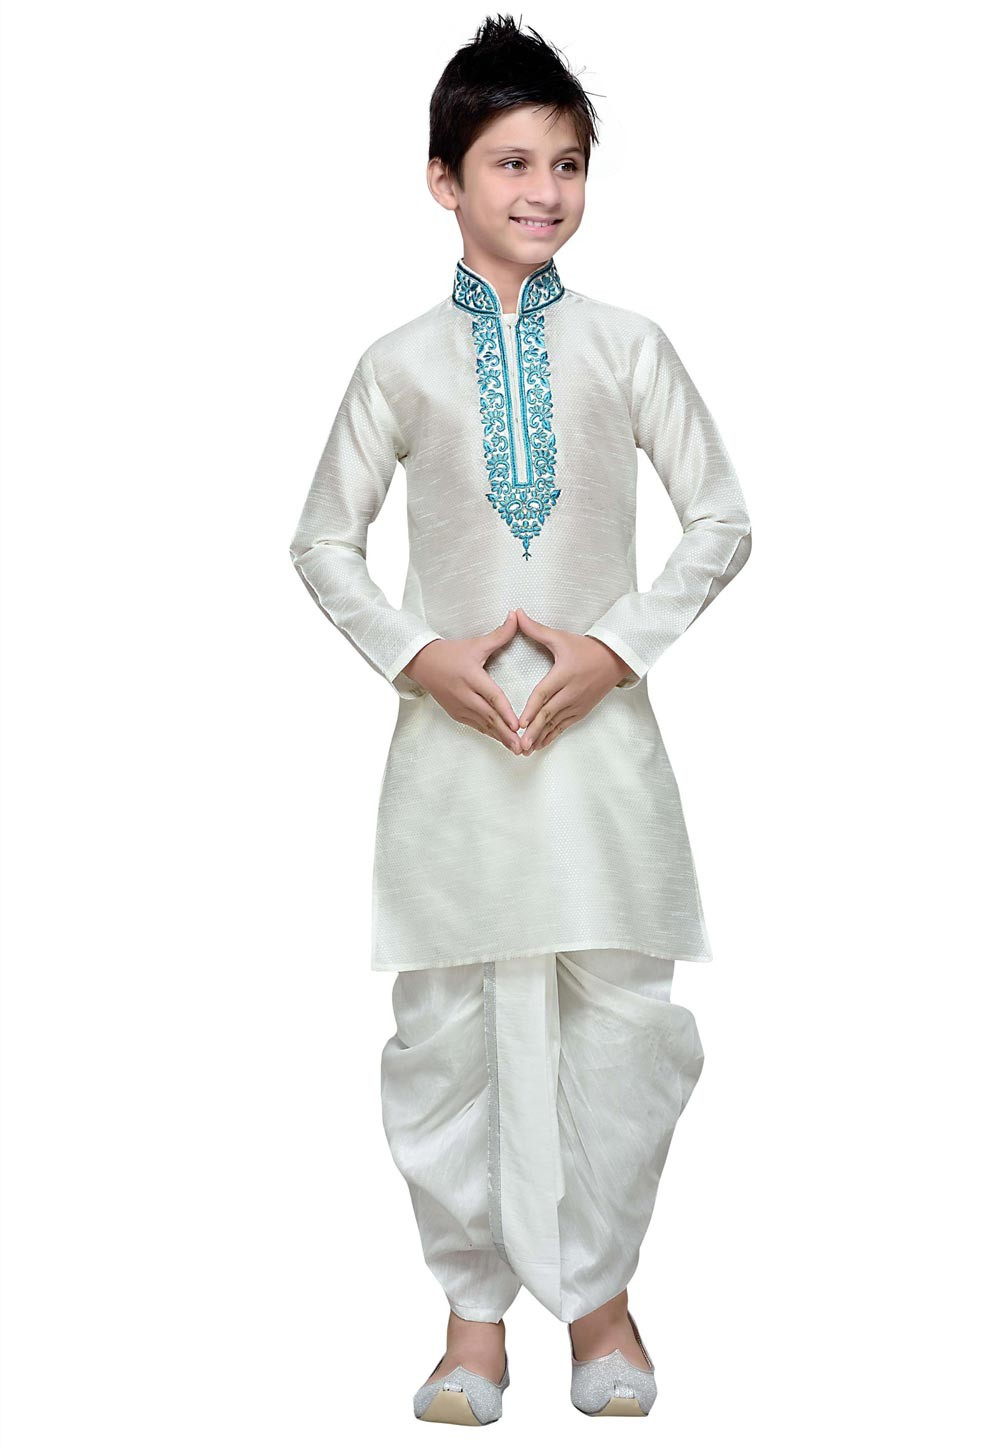 Off White Color Cotton Fabric Boy's Kurta Pajama.